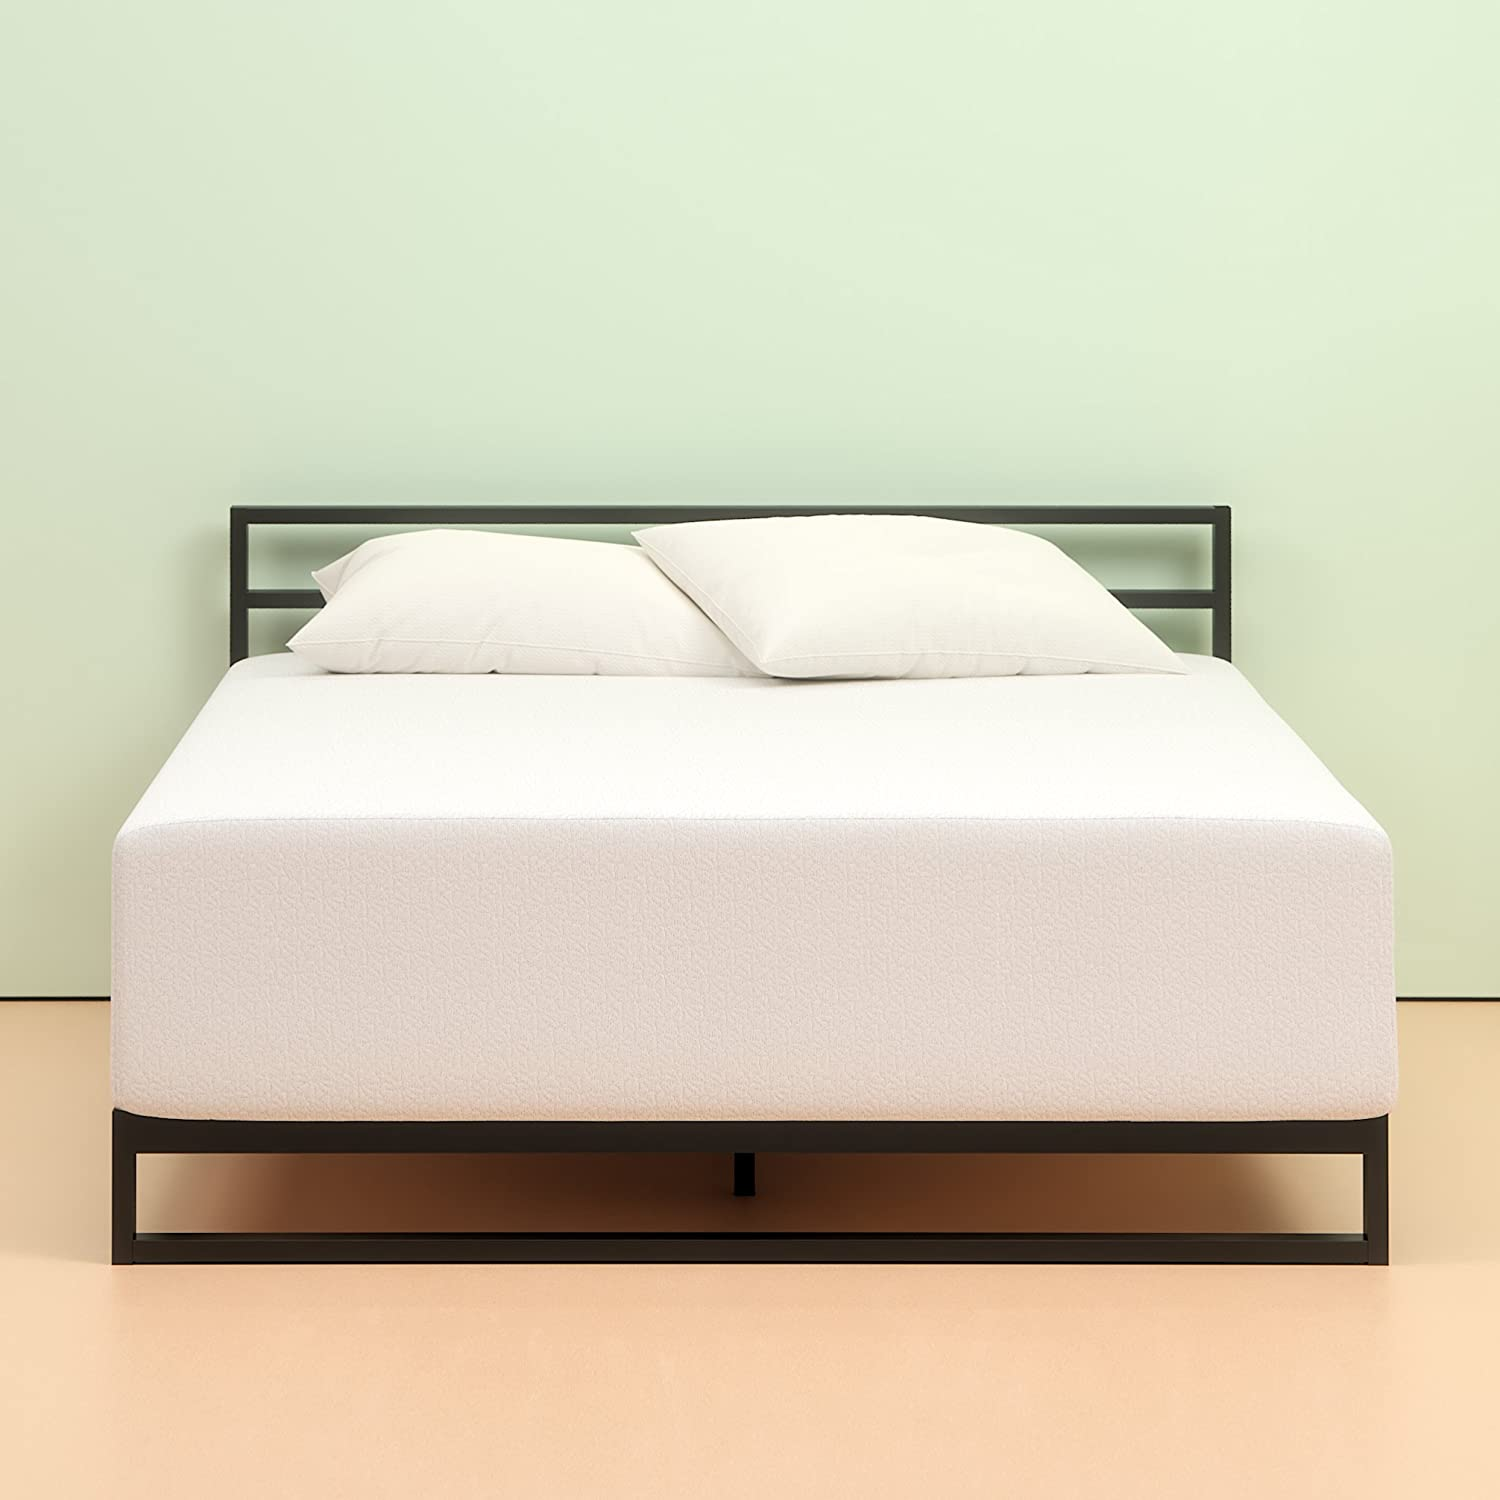 Zinus company mattress